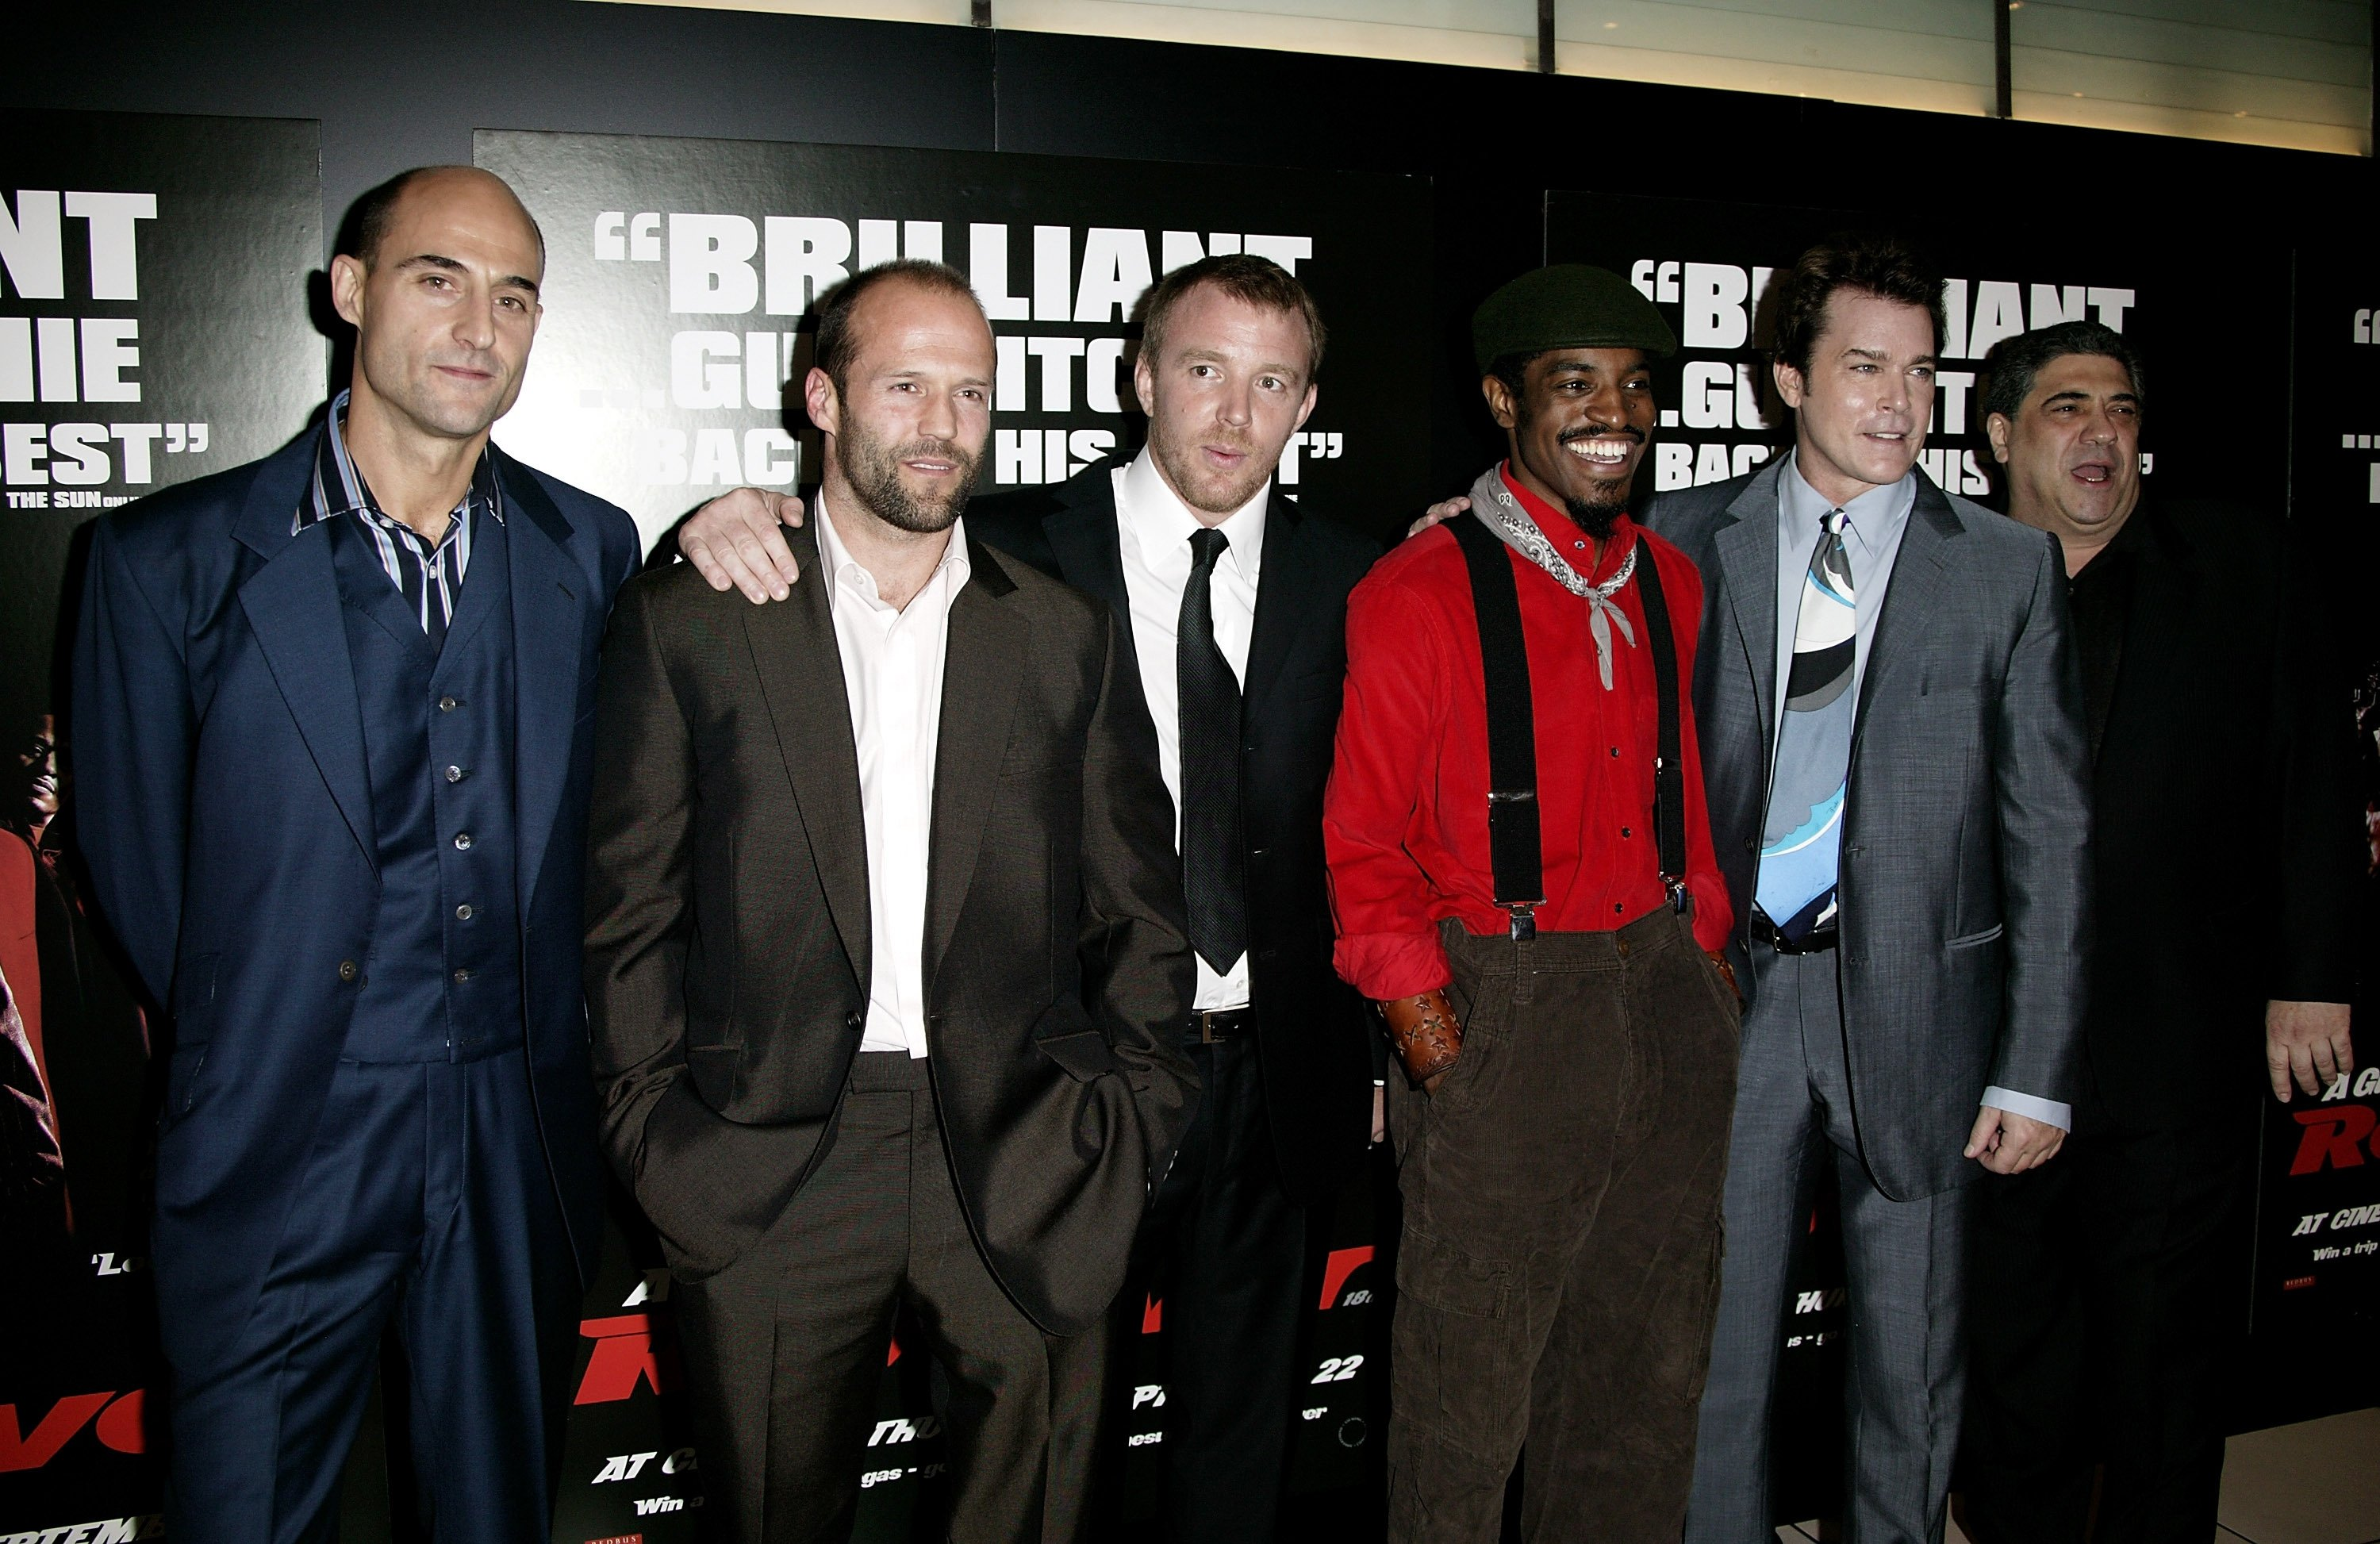 From left to right, actors Mark Strong, Jason Statham, director Guy Ritchie, actors Andre 'Andre 3000' Benjamin, Ray Liotta and Vincent Pastore arrive at the U.K. Premiere of 'Revolver' at the Odeon Leicester Square, London, England, Sept. 20, 2005.  (Getty Images)